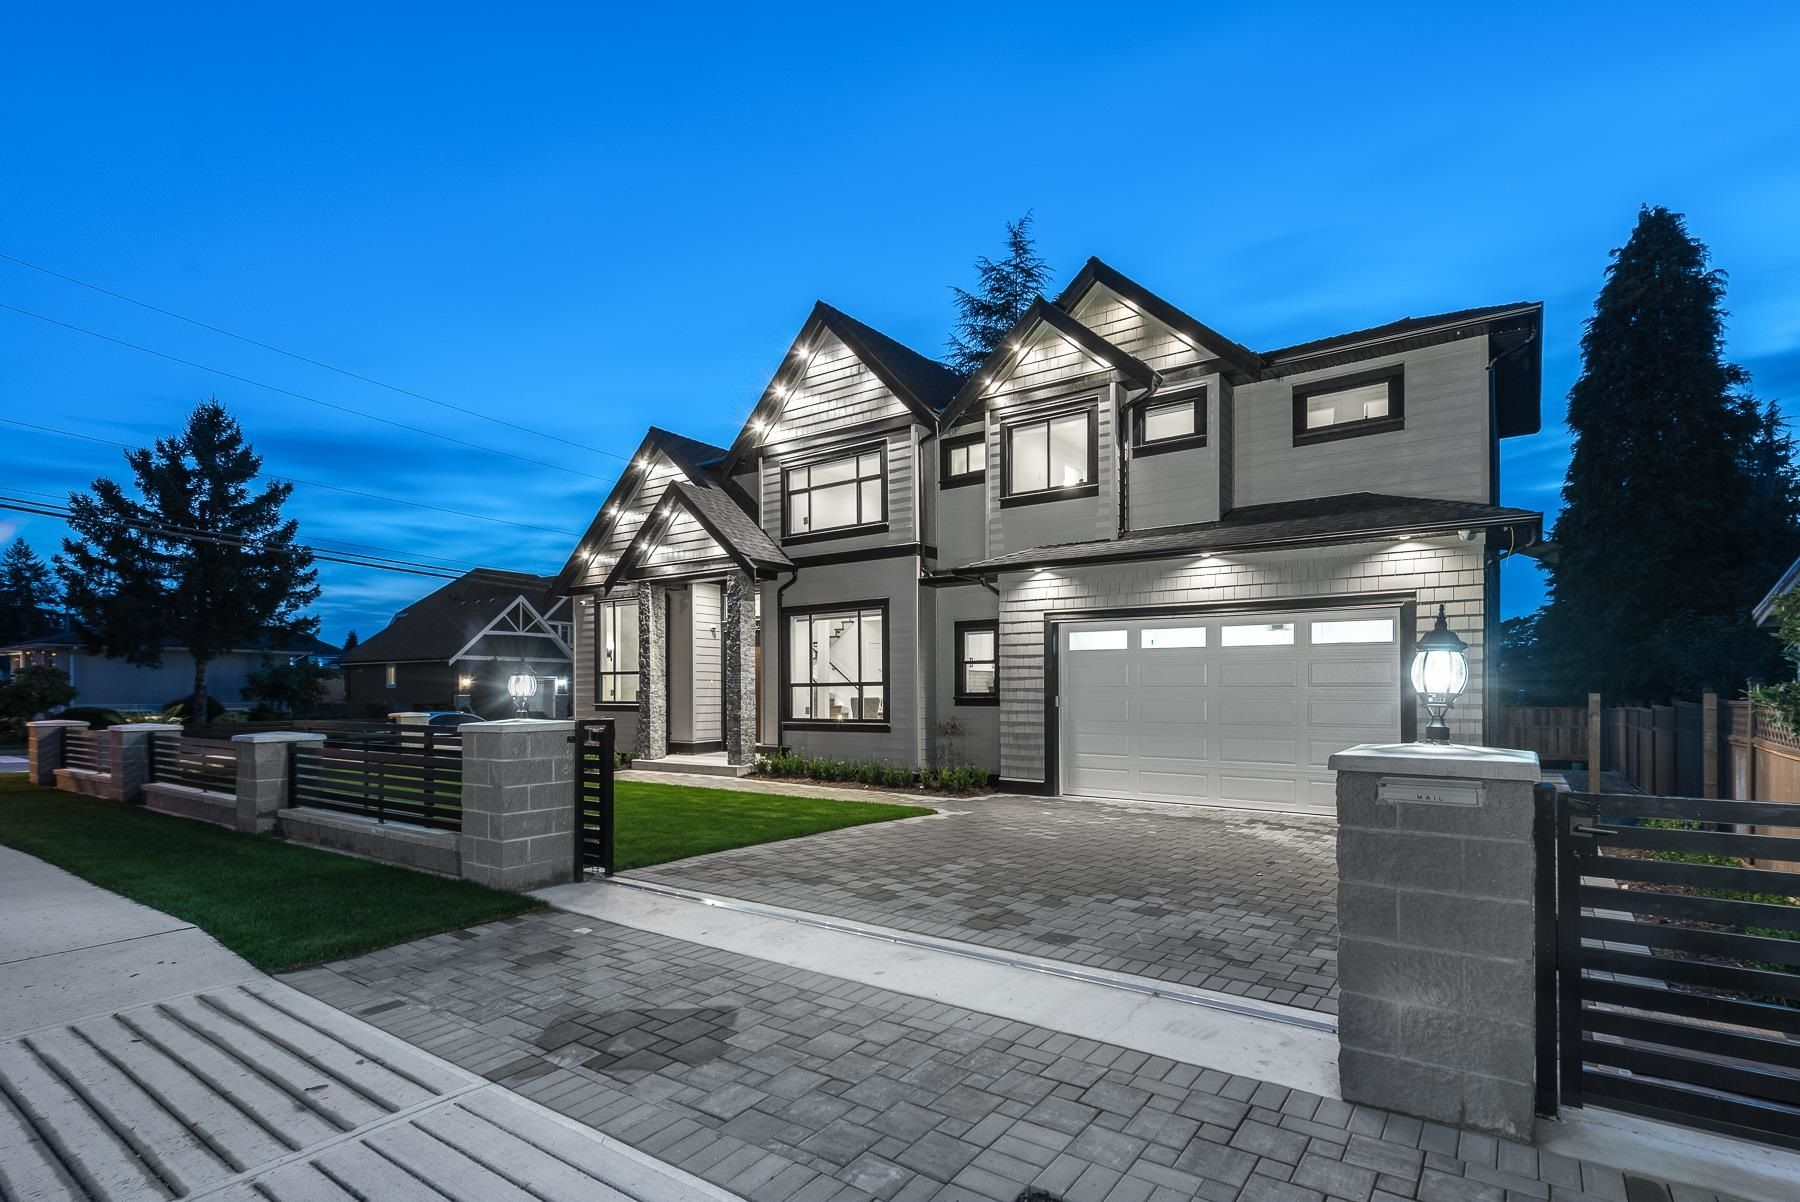 Main Photo: 730 SCHOOLHOUSE Street in Coquitlam: Central Coquitlam House for sale : MLS®# R2625076